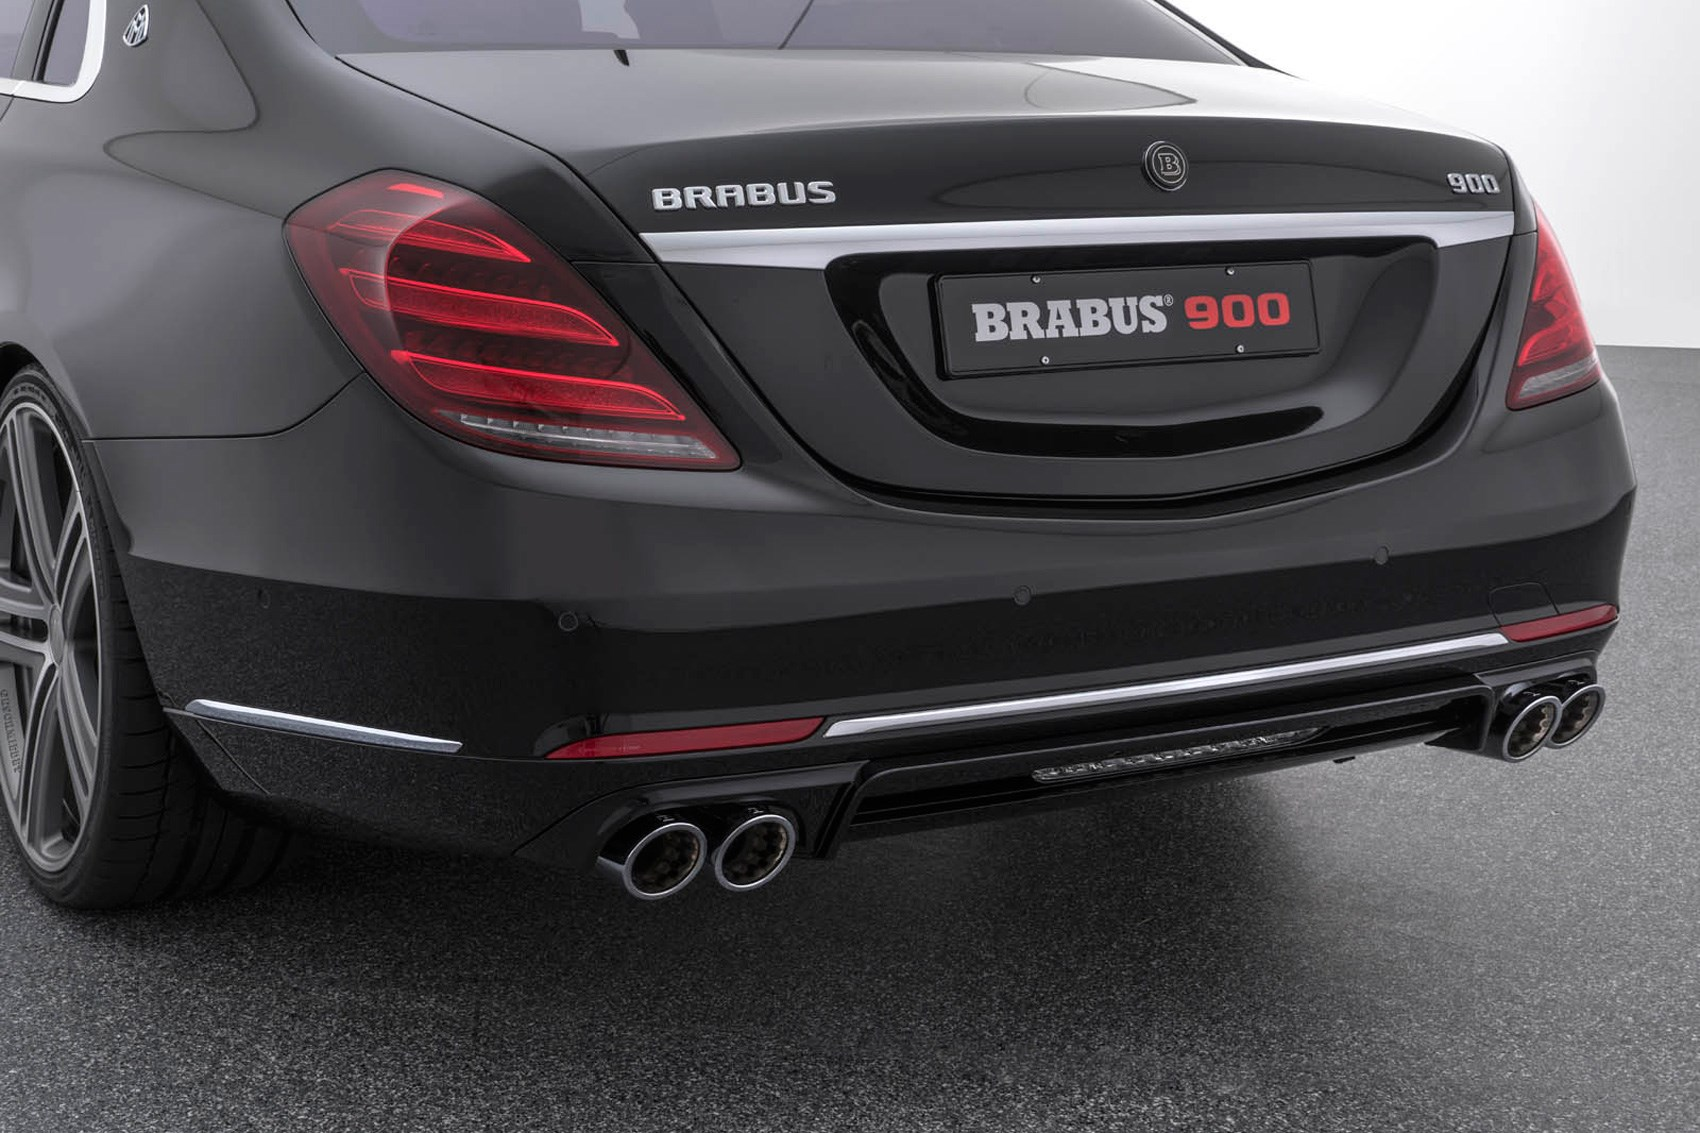 Demonic Limo Mercedes S Class Facelift Gets 888bhp Brabus